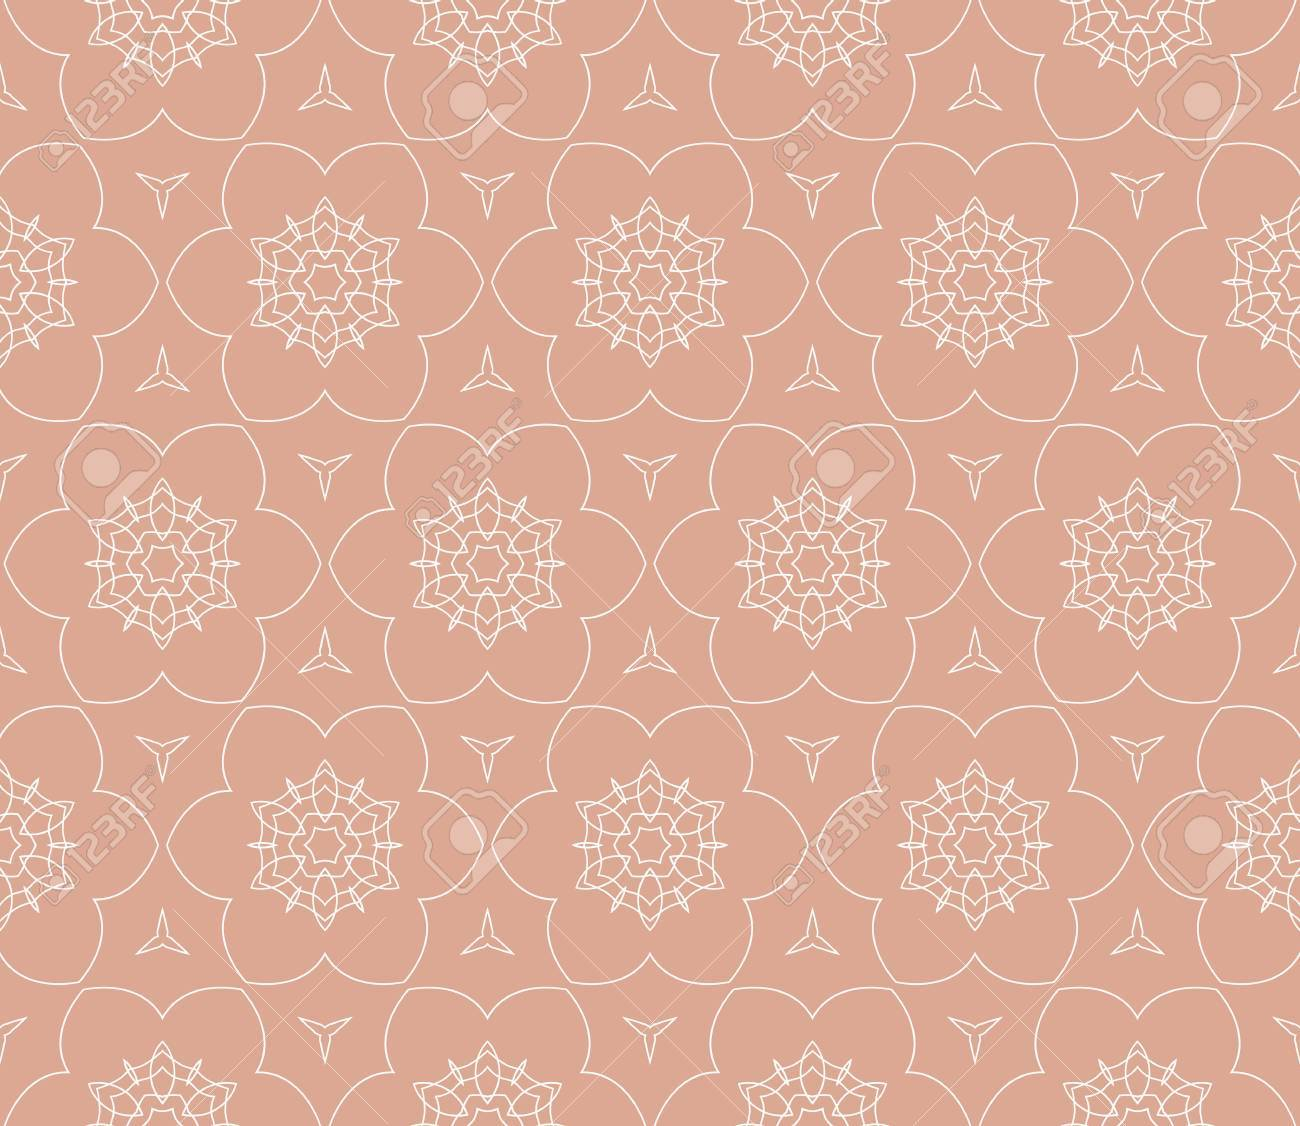 Seamless Patterns Abstract Floral Geometric Texture Ornament